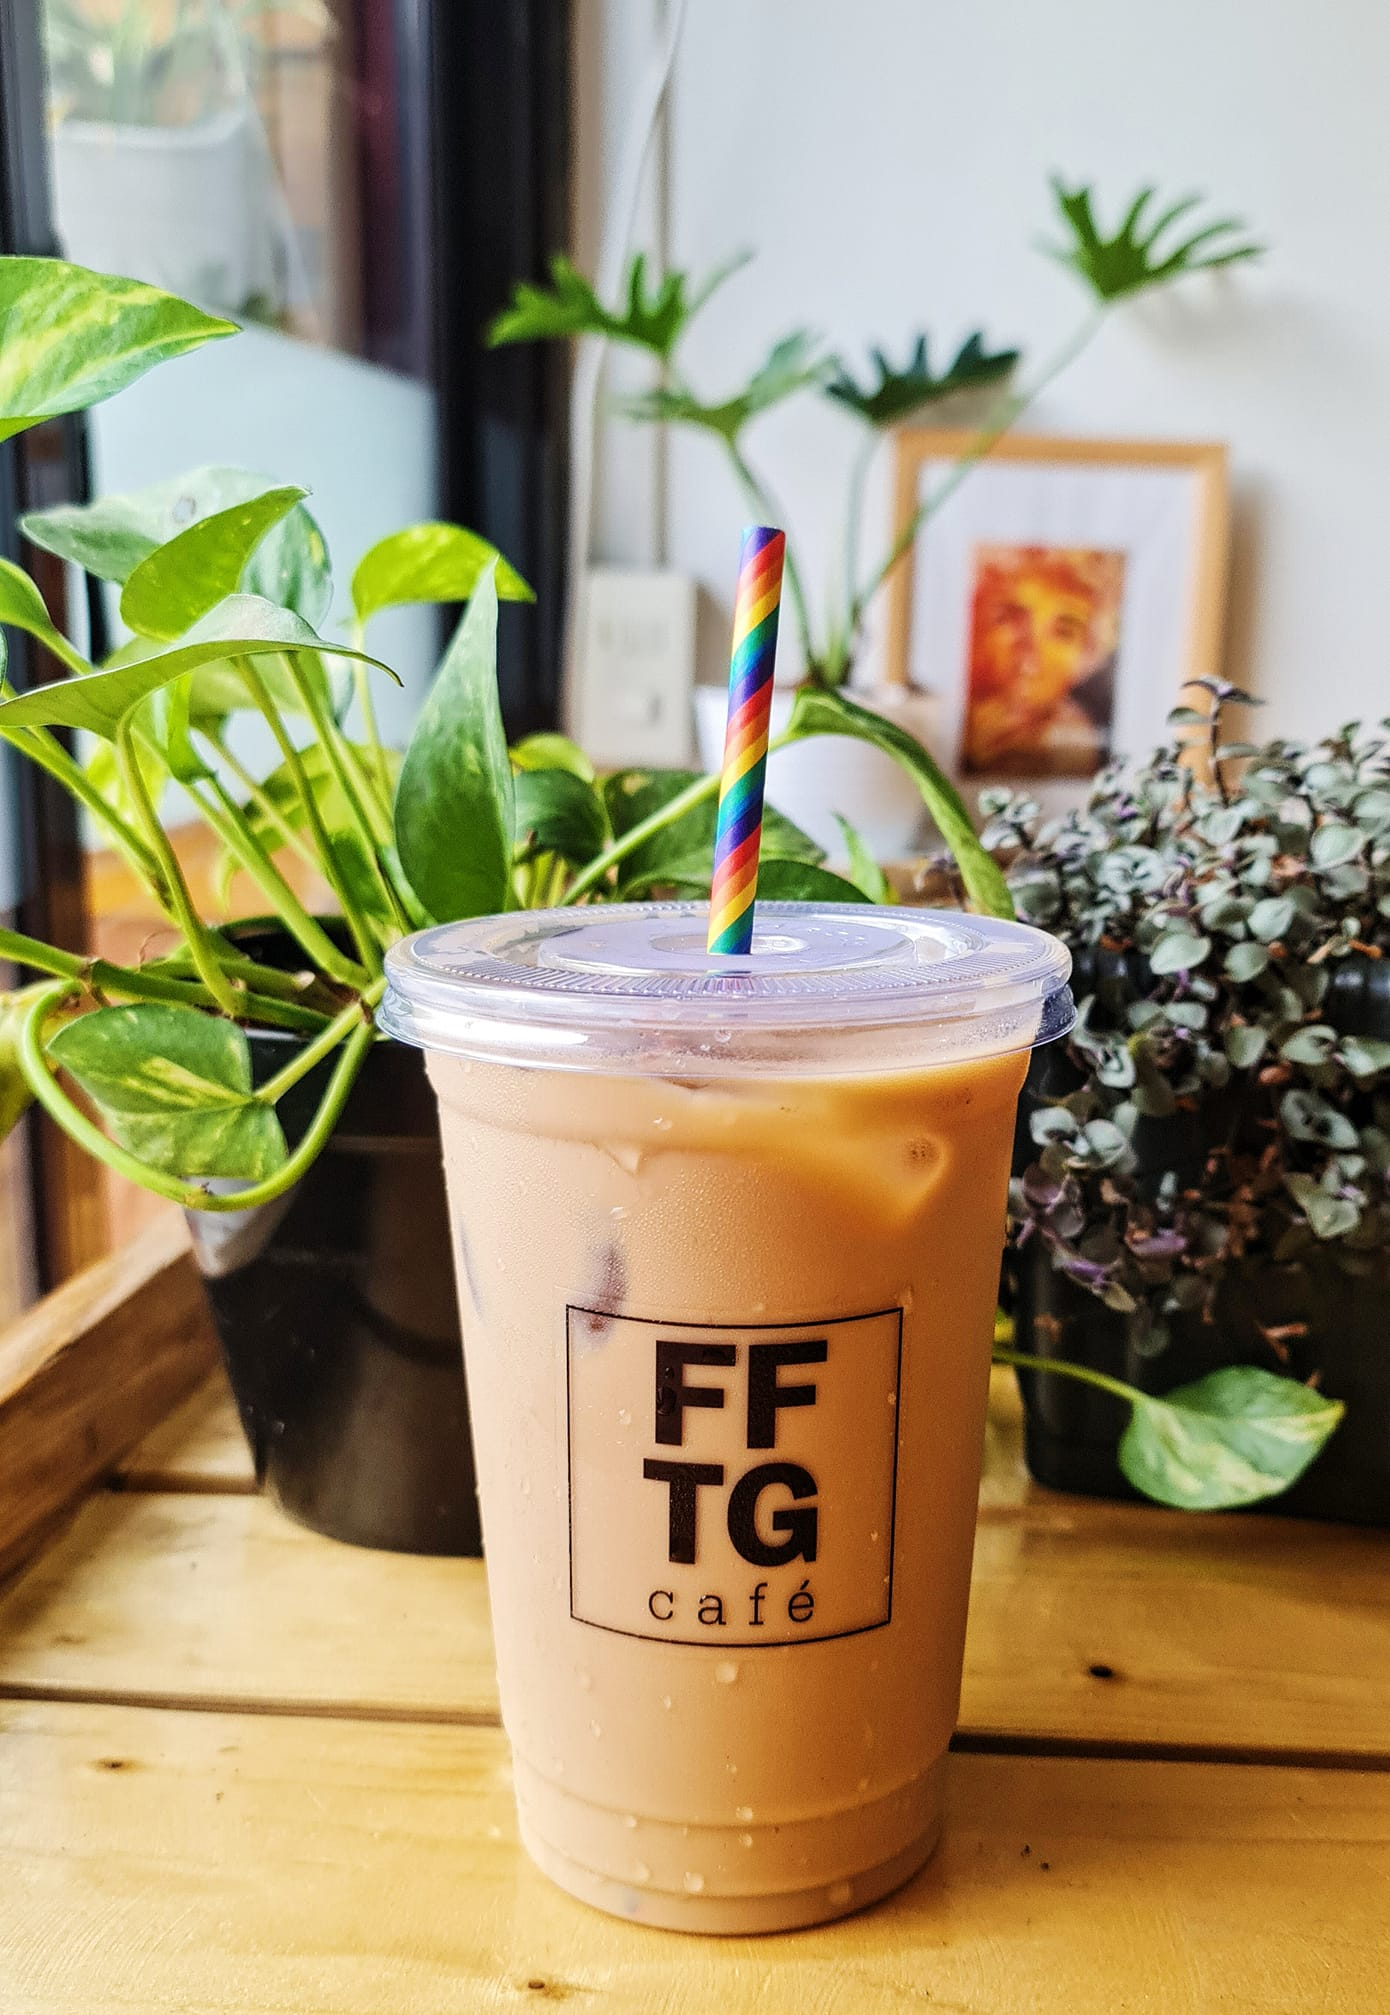 FFTG's bestselling Iced Coffee Shakerato